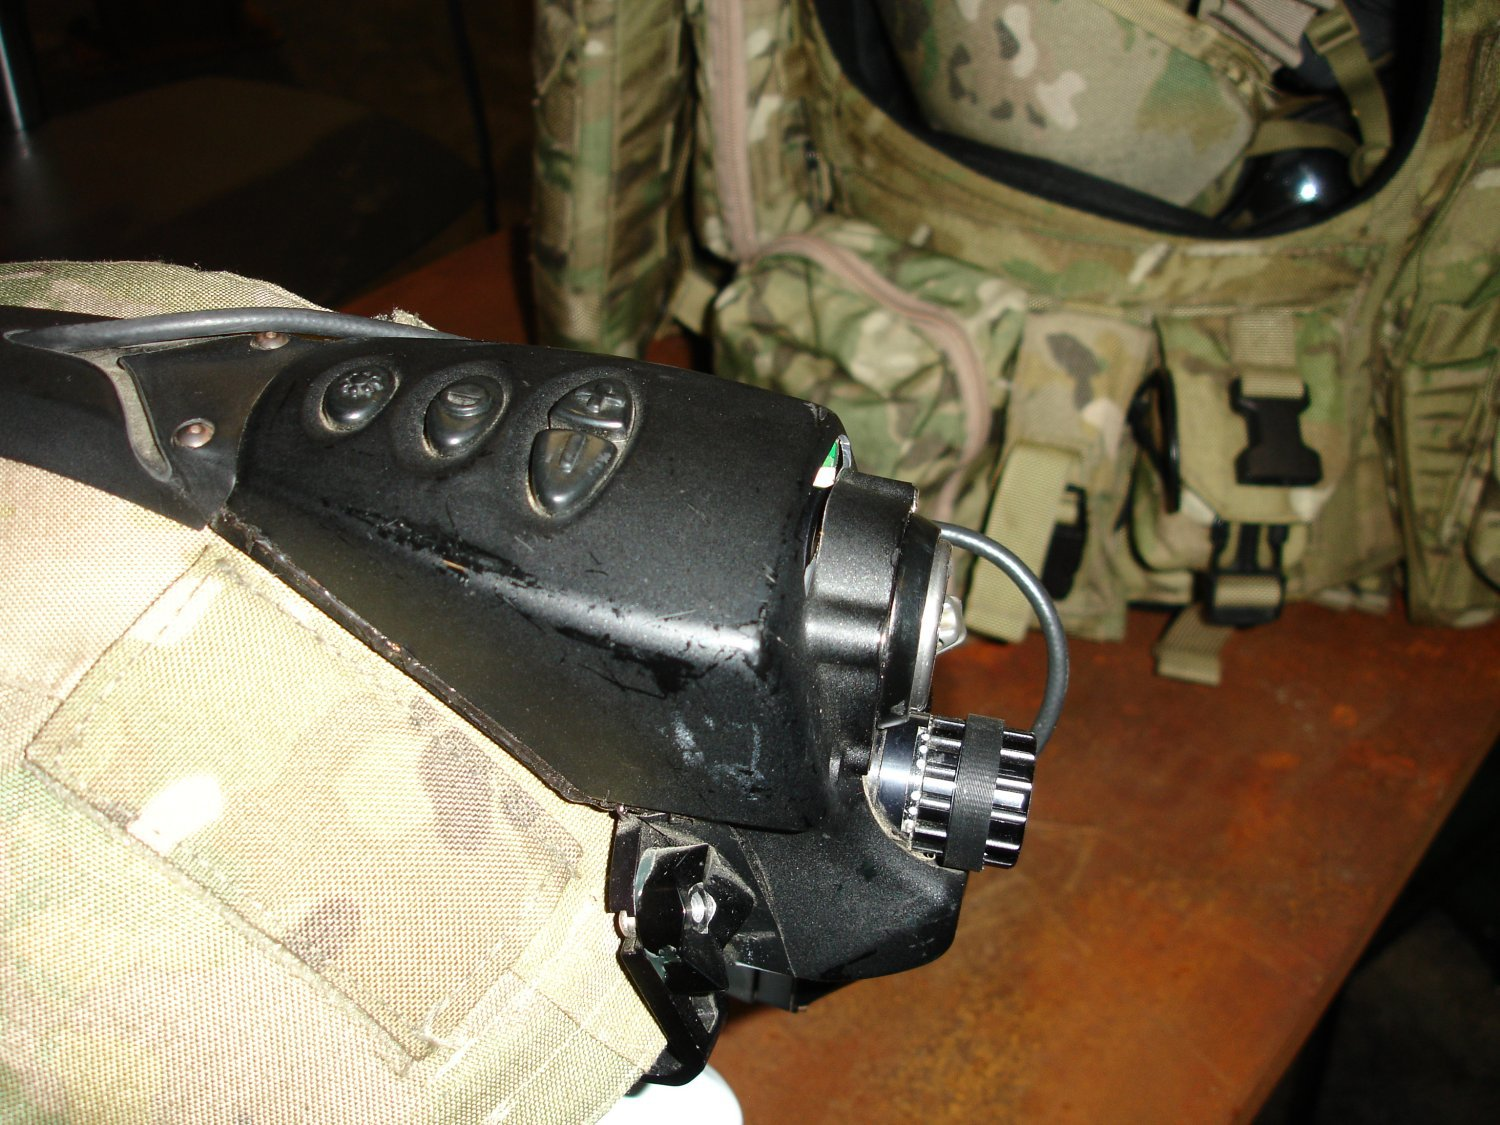 AUSAWinterSymposiumandExhibition2007 FutureForceWarrior RockwellCollinsFusedSensorHMD 4 <!  :en  >Infrared/Night Vision Fusion HMD Developed for Future Force Warrior (FFW)<!  :  >